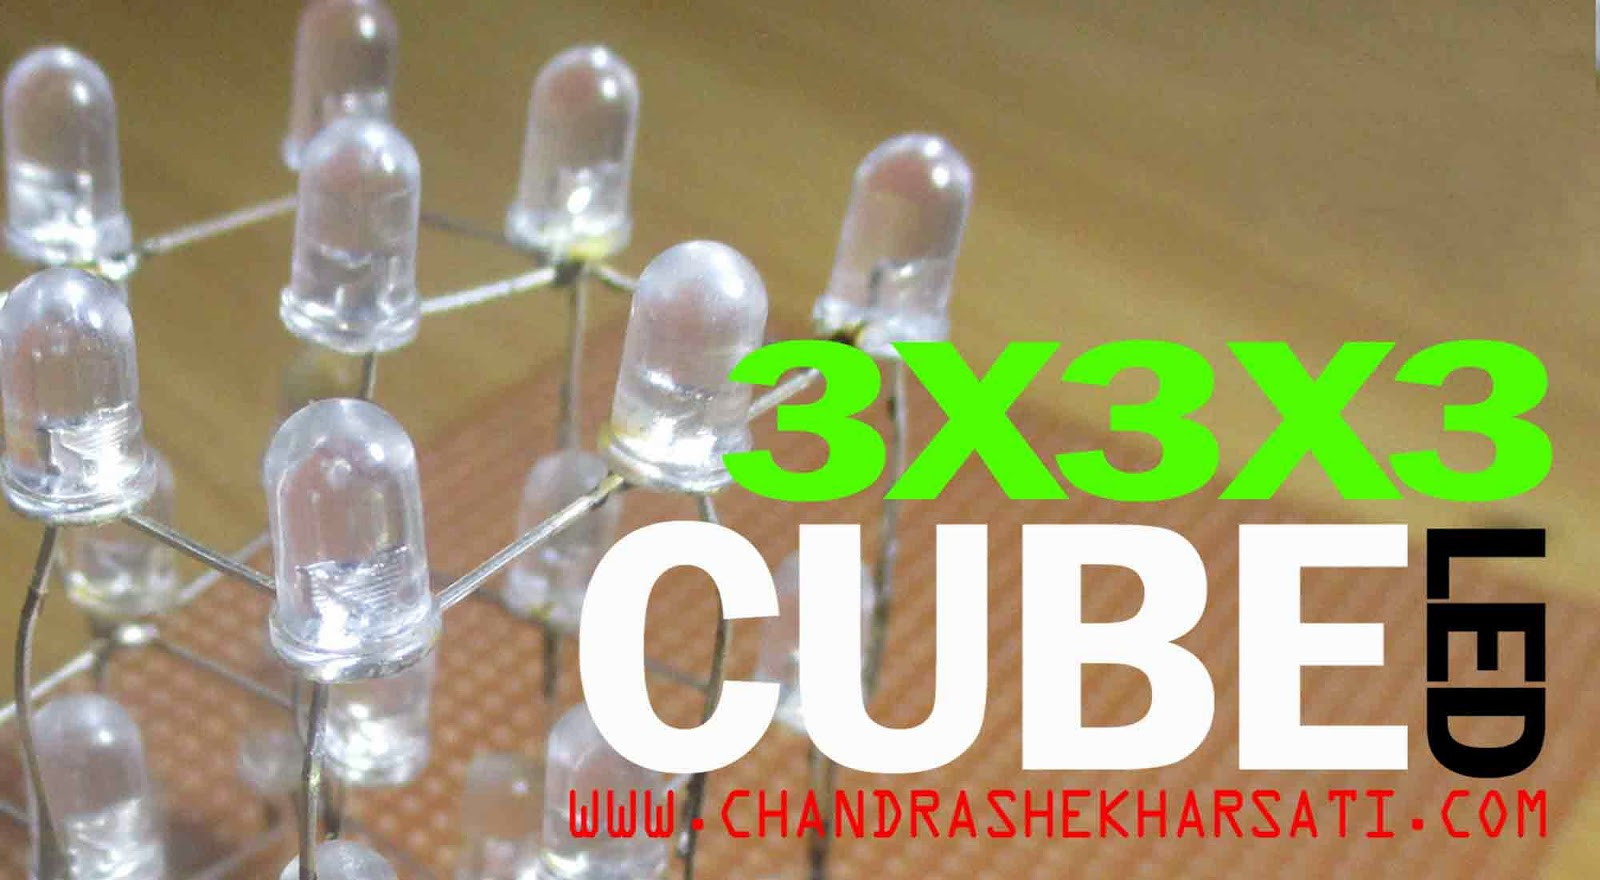 Making Of A 3x3x3 Led Cube Arduino Style Chandra Shekhar Sati Vu Meter Using Lm3915 Circuit Diagram These Cubes Works Like Single Row Column Keyboard Interface But It Uses Three Levels Or Floors Instead Columns Is Simple And